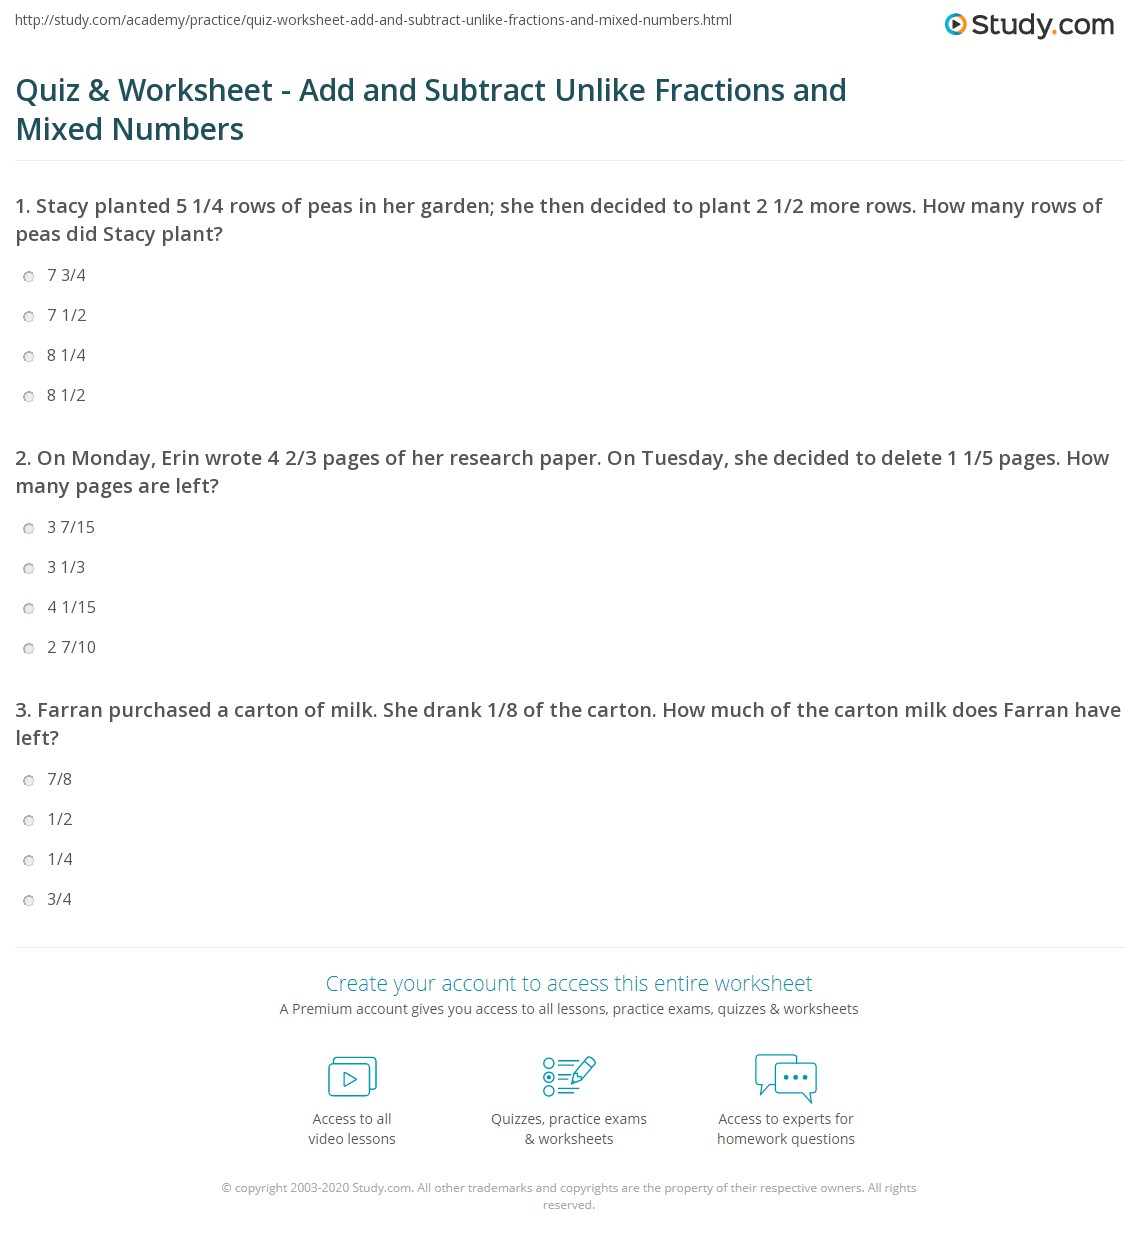 Worksheets Adding And Subtracting Mixed Numbers Worksheet With Answers quiz worksheet add and subtract unlike fractions mixed print how to numbers worksheet